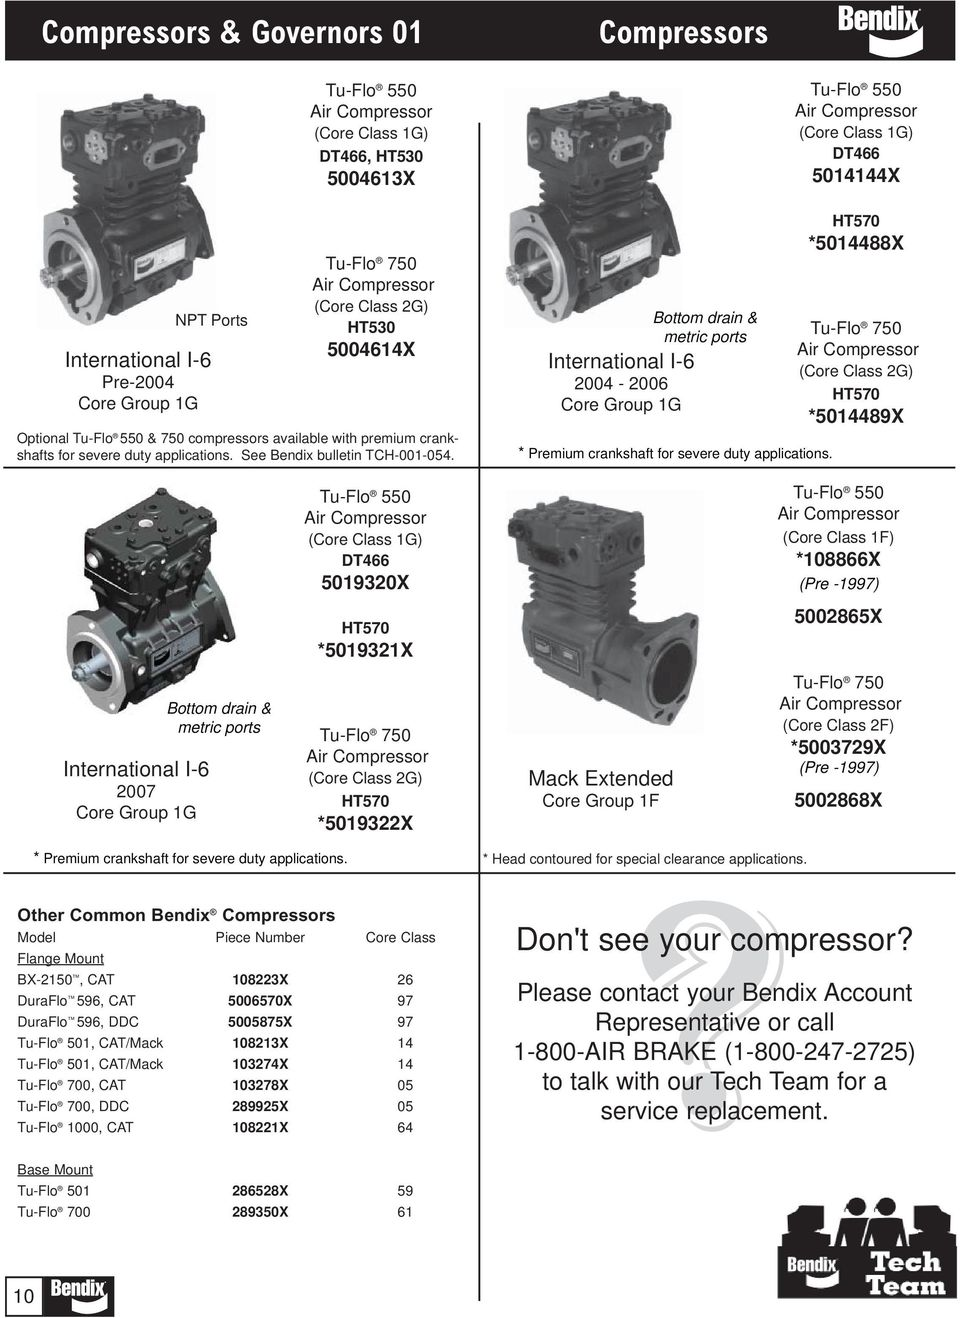 Compressors Governors 01 Pdf Navistar Ht 570 Engine Diagram Core Class 1g Dt466 5014144x Ht570 5014488x 2g